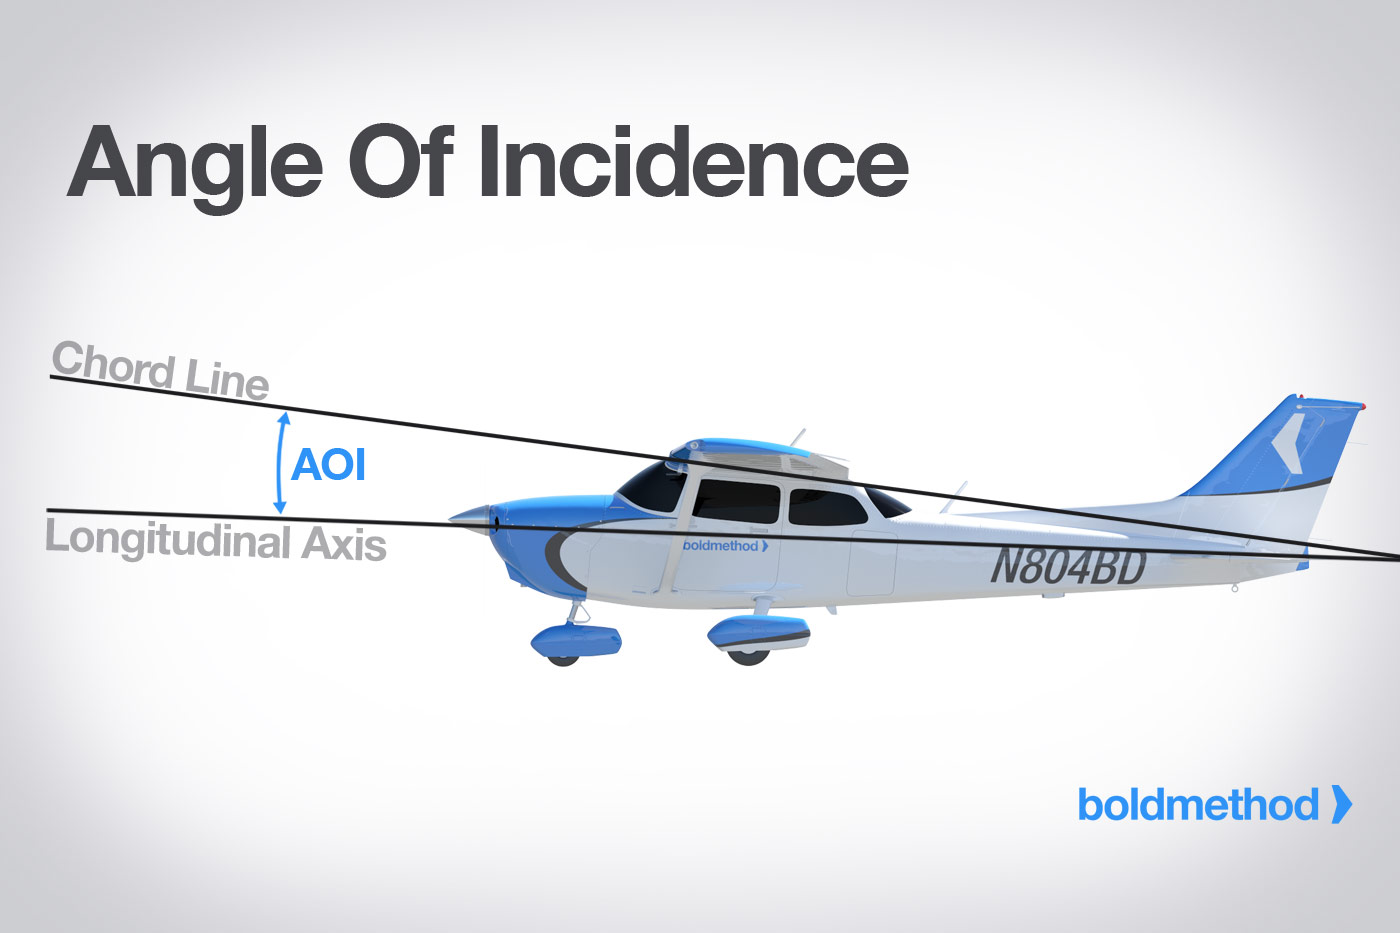 Why Would You Want To Change Your Angle Of Incidence